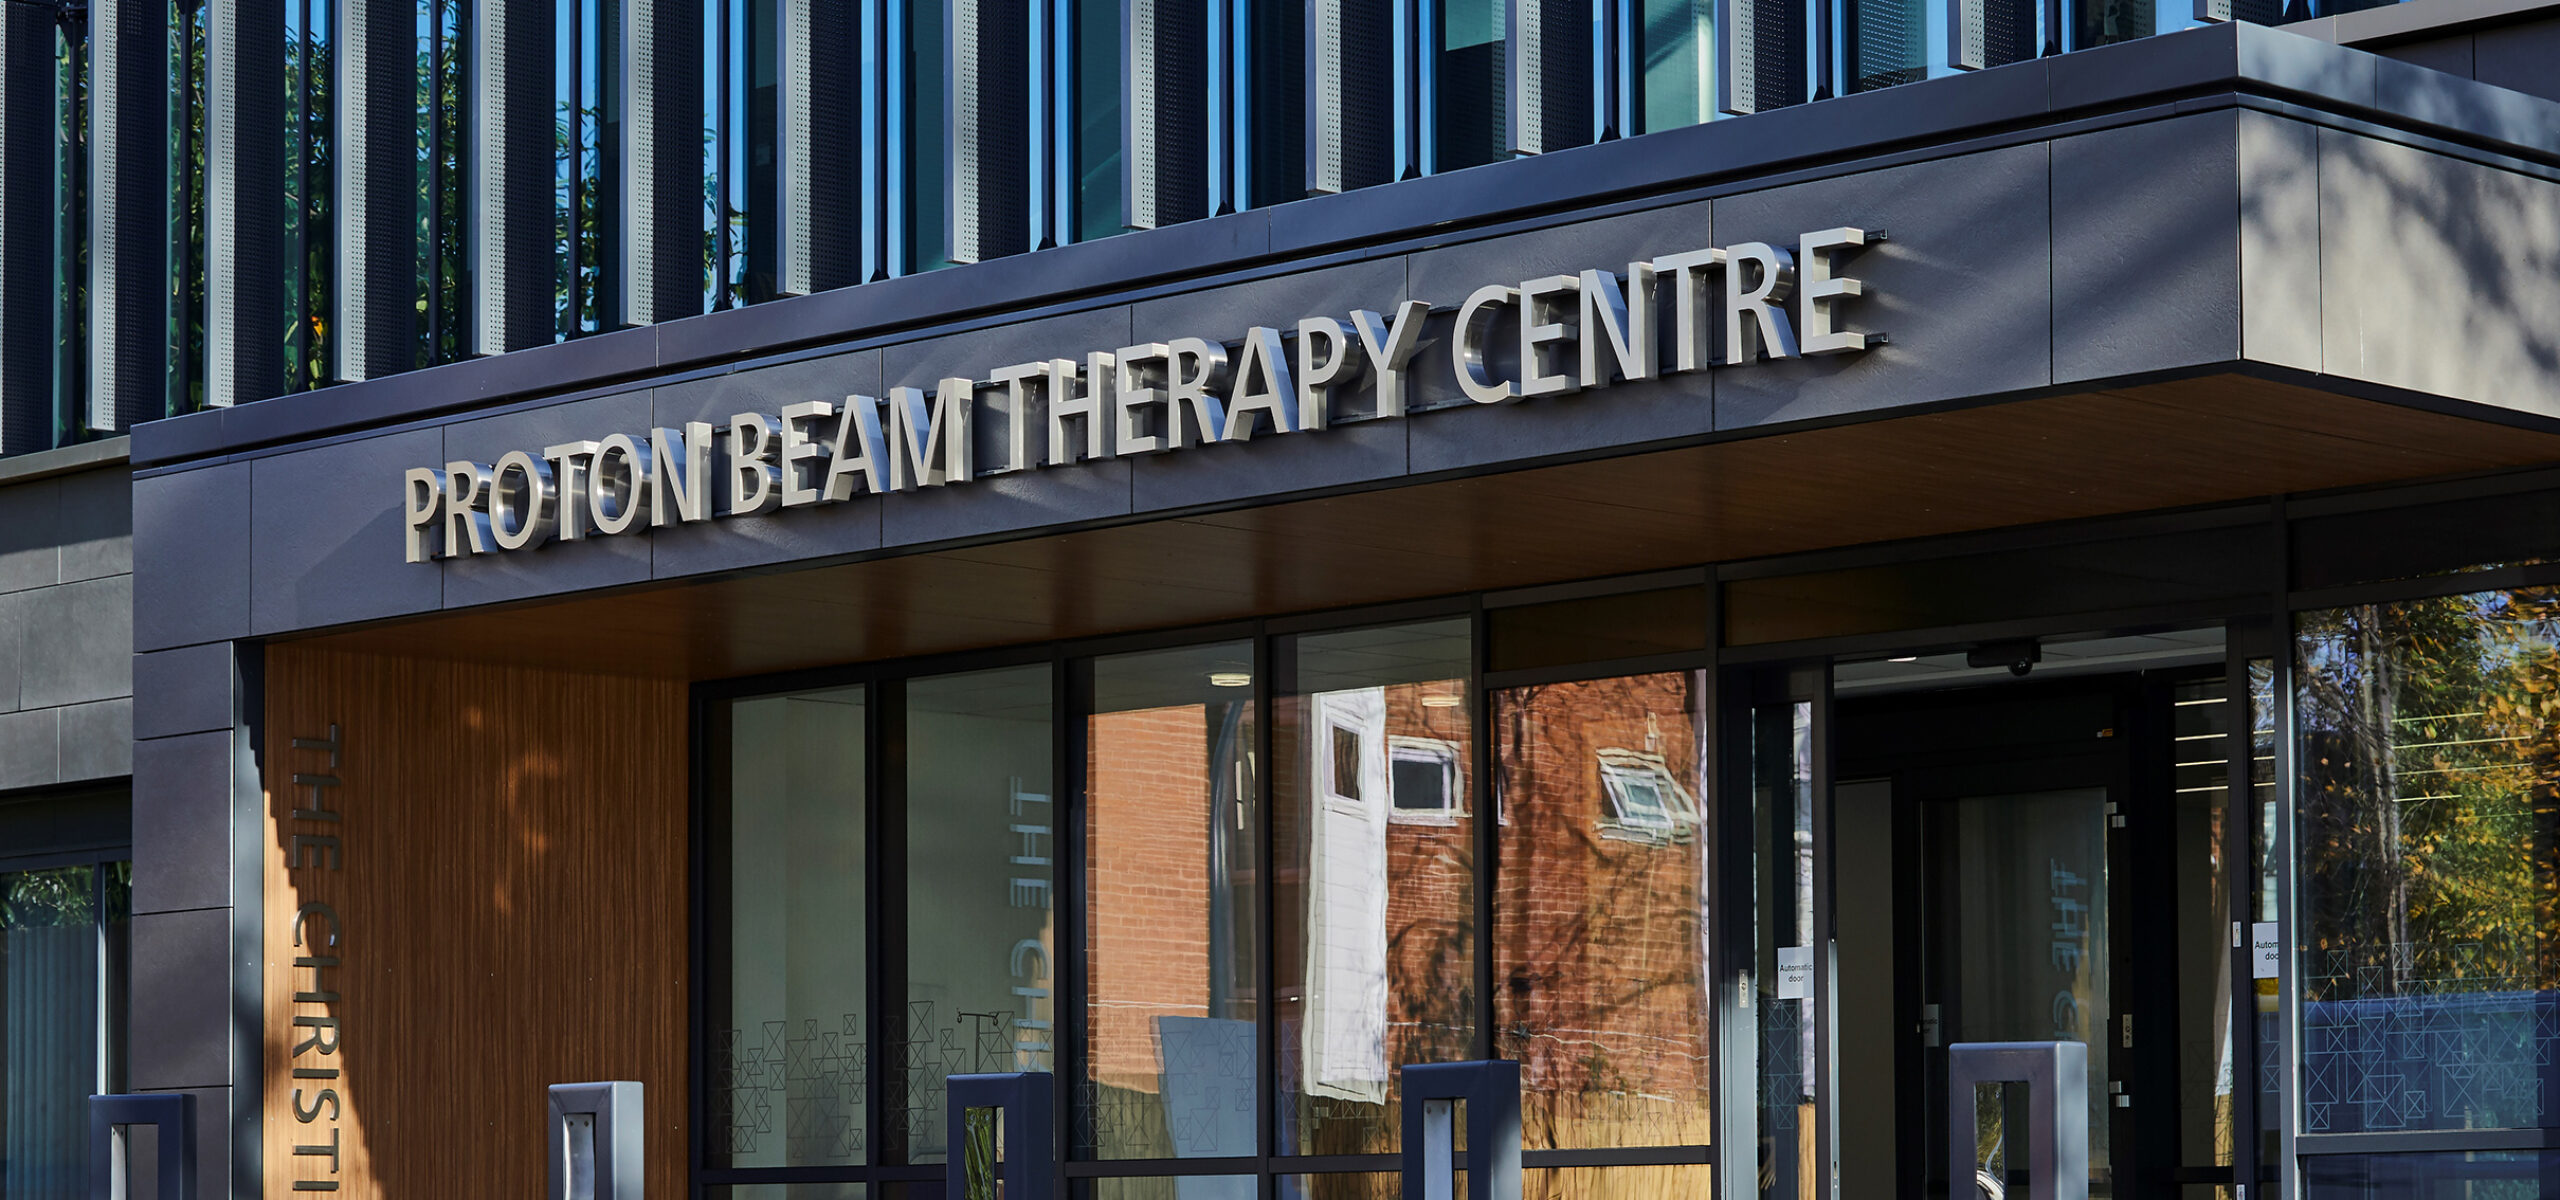 Manchester Cancer Research Centre | Beth Rothwell – Proton therapy and the PRECISE group